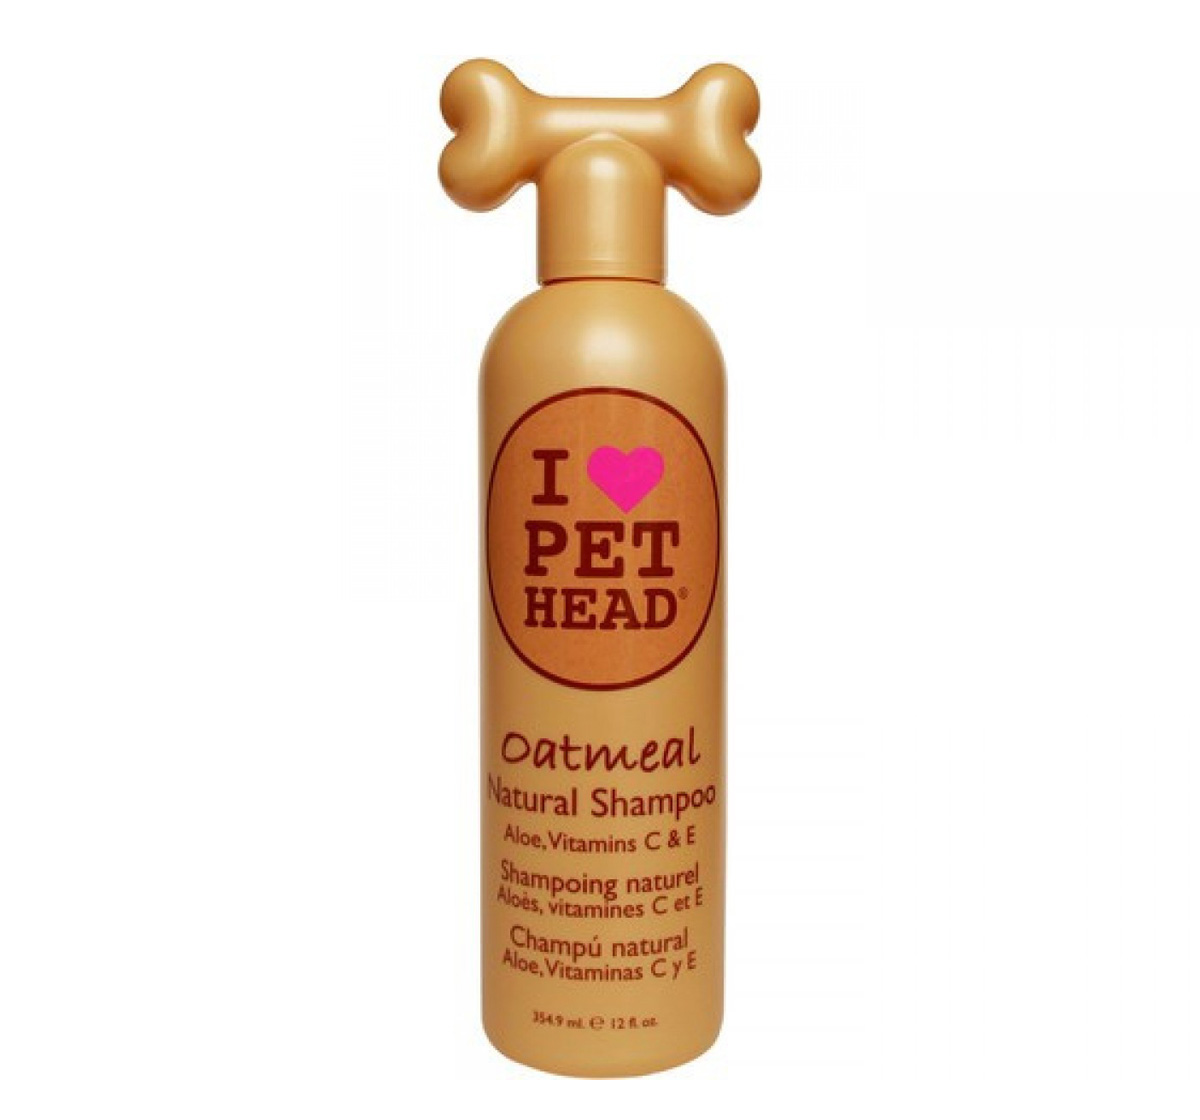 Pet Head Oatmeal Natural Dog Shampoo - 354 ml